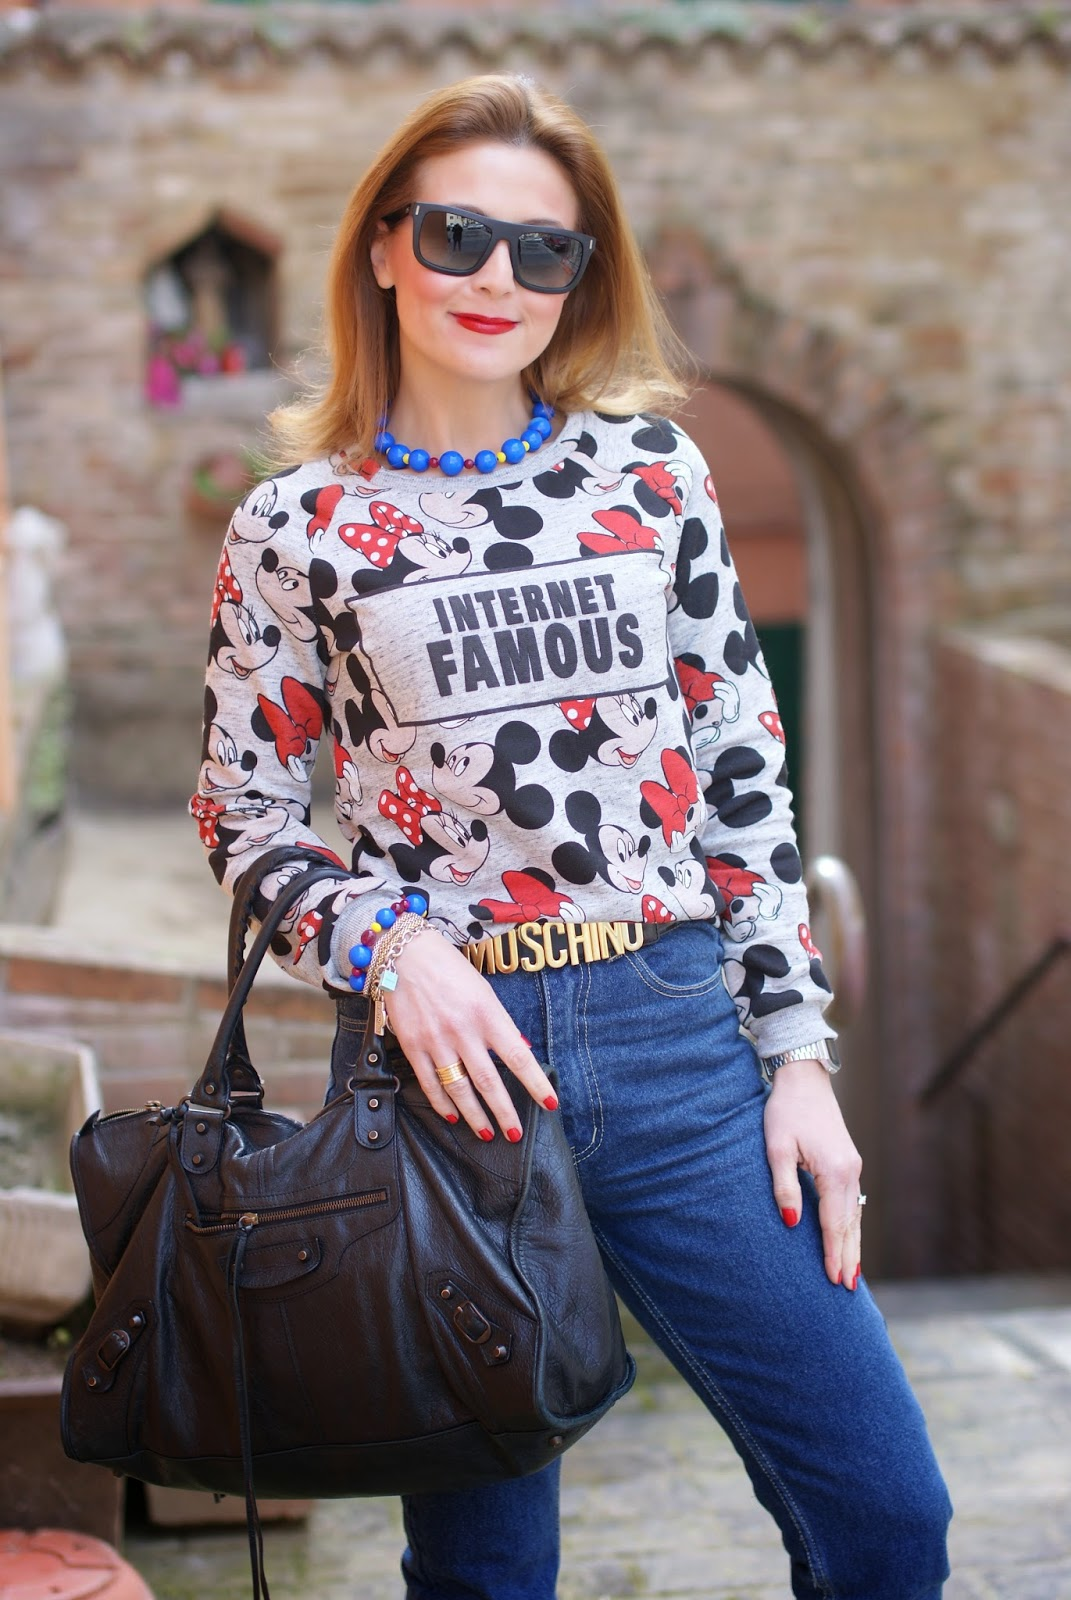 Minnie mouse print, Mickey mouse print sweatshirt, Internet famous top, Bershka sweater, Balenciaga work bag on Fashion and Cookies fashion blog, fashion blogger style